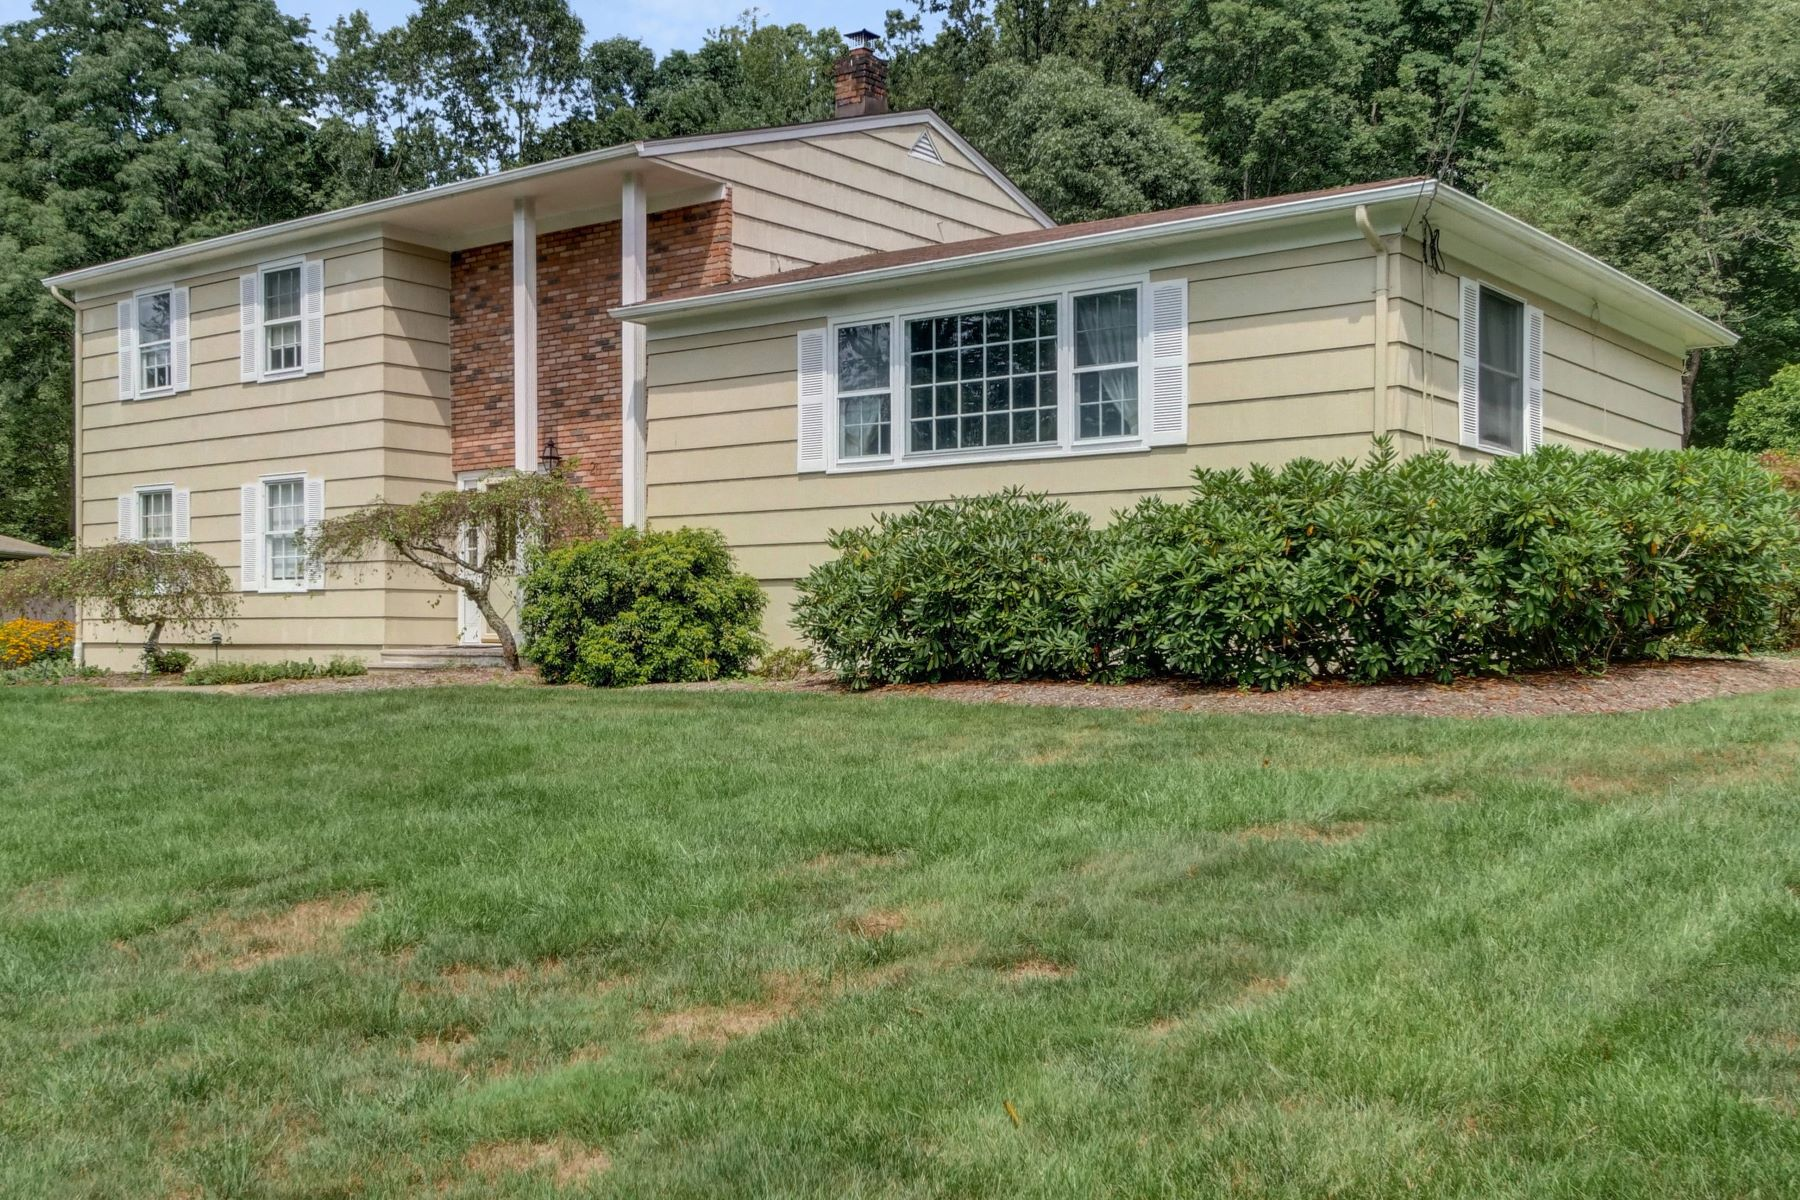 Single Family Homes for Active at Lovely Home 20 Linda Terrace Randolph, New Jersey 07869 United States